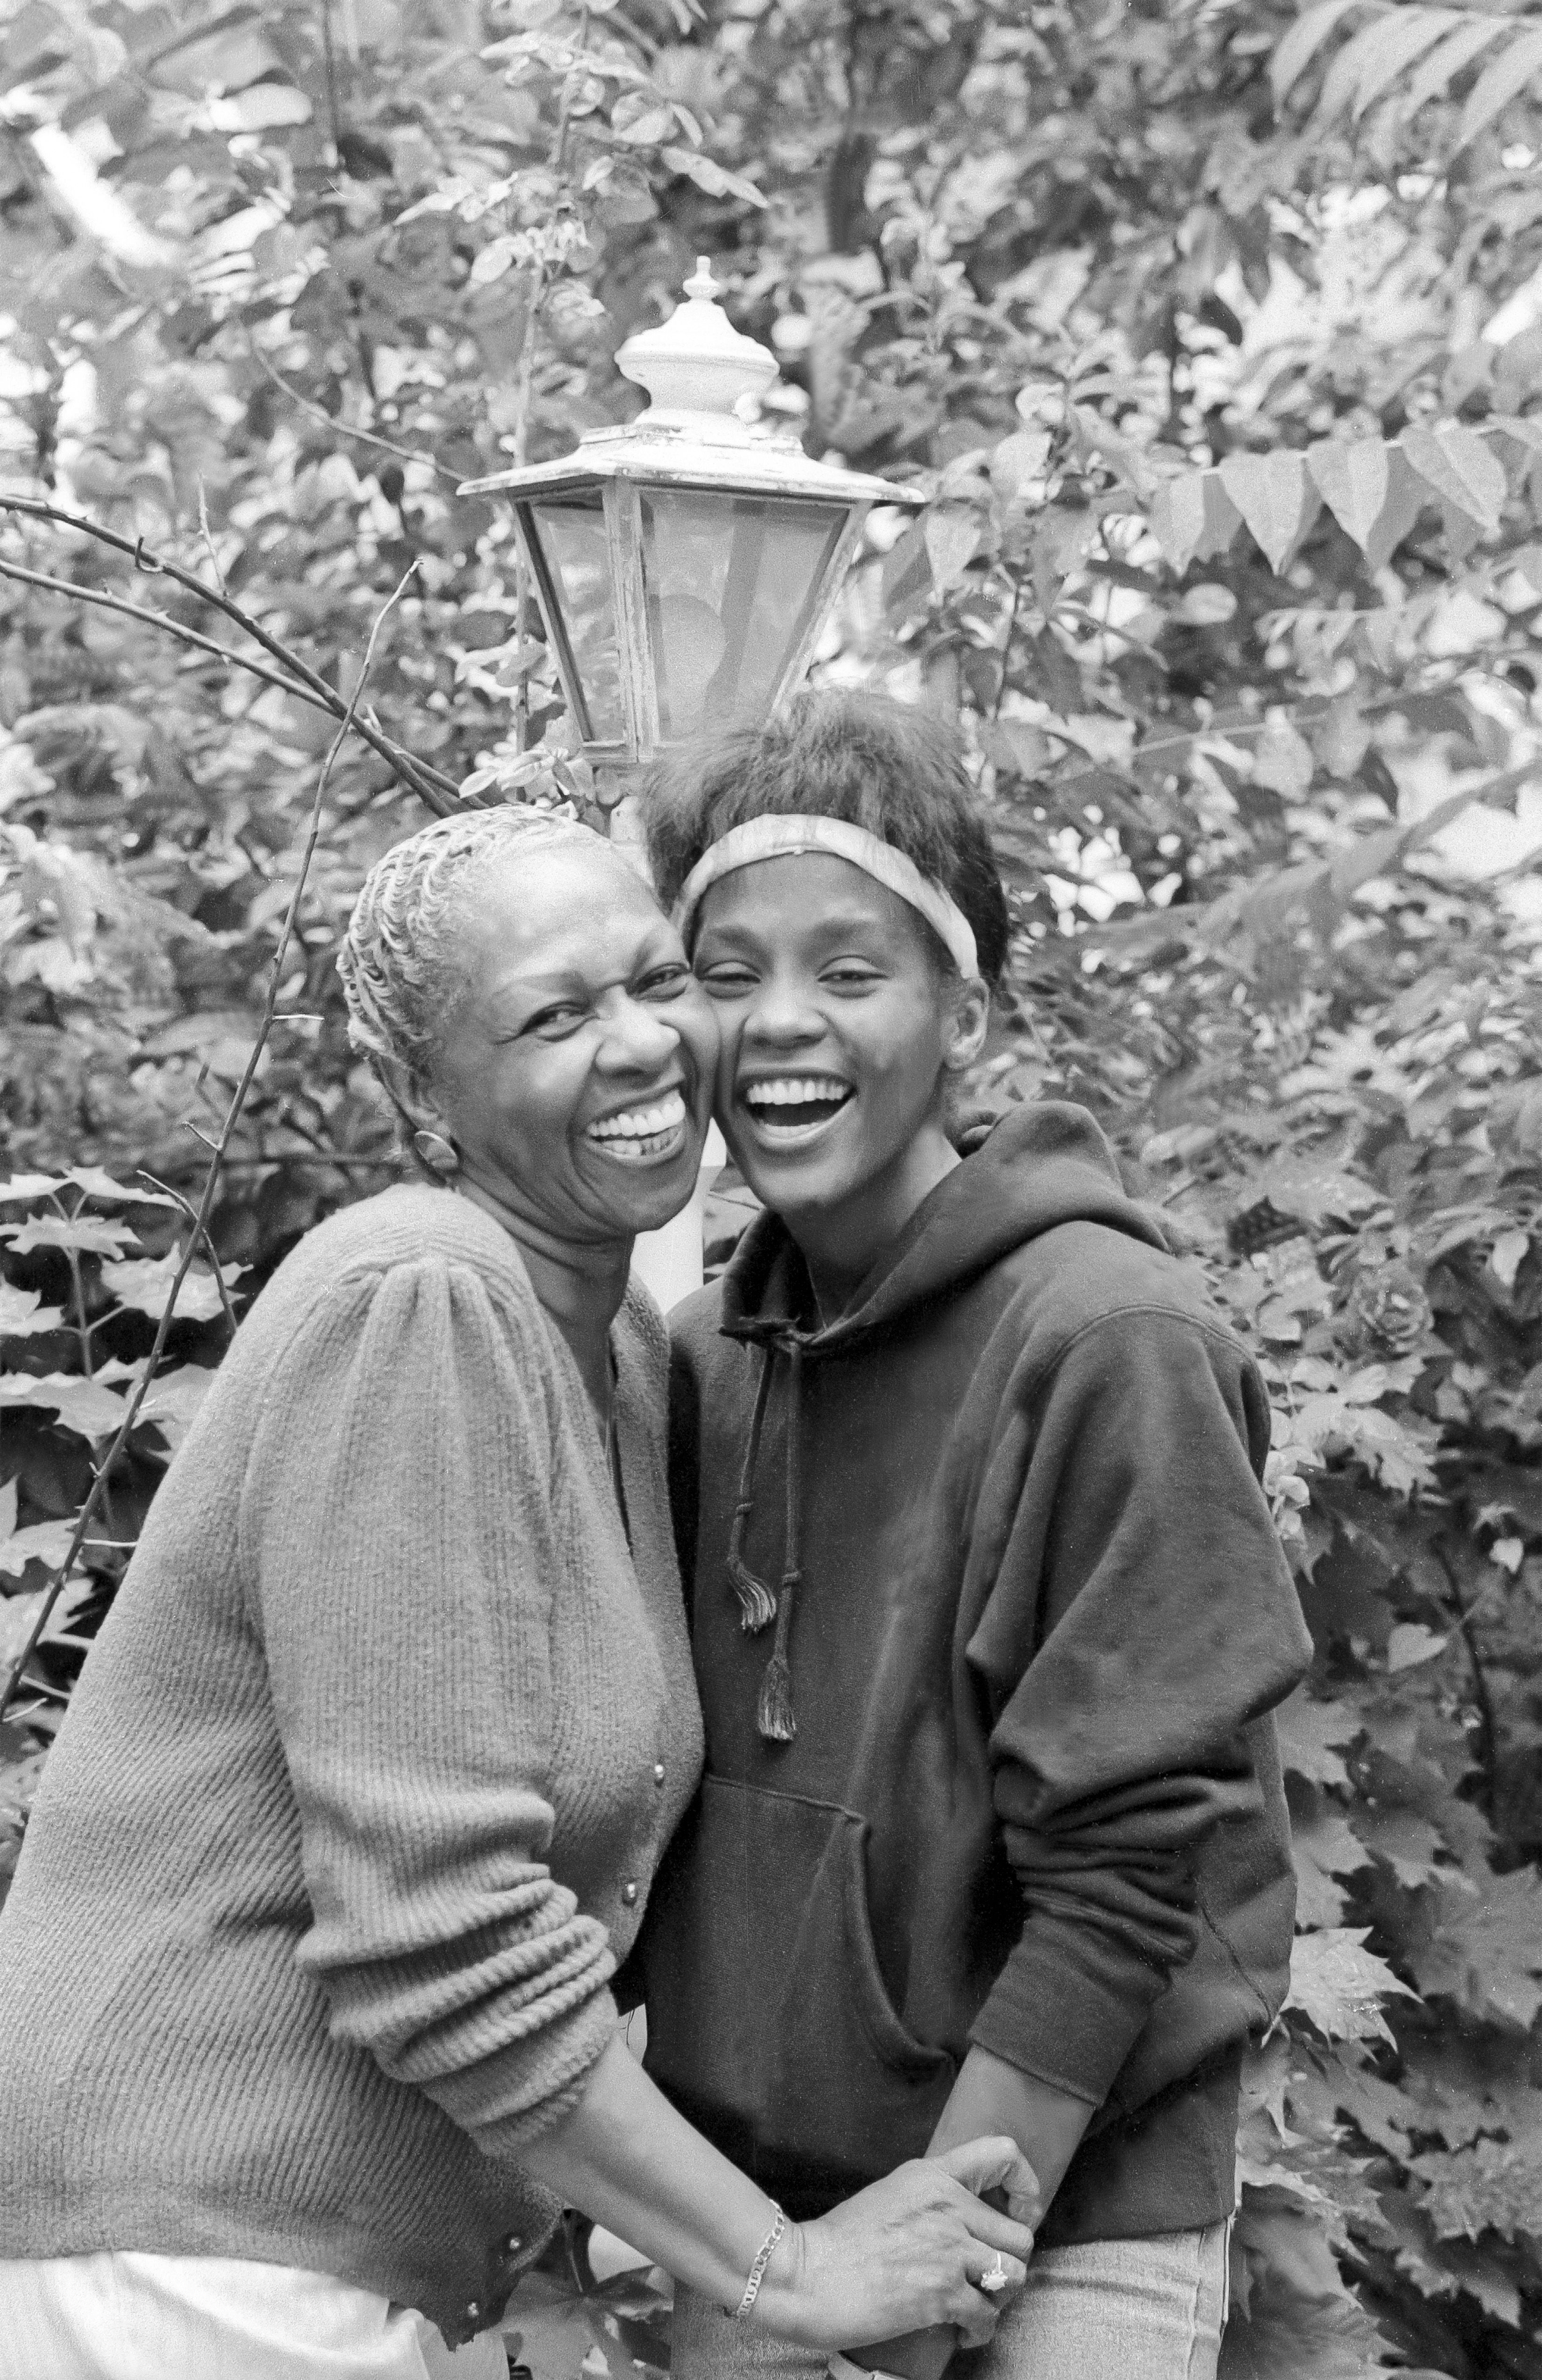 Whitney Houston's Mom Is More Accepting of LGBTQ Love—and That Makes Me Hopeful